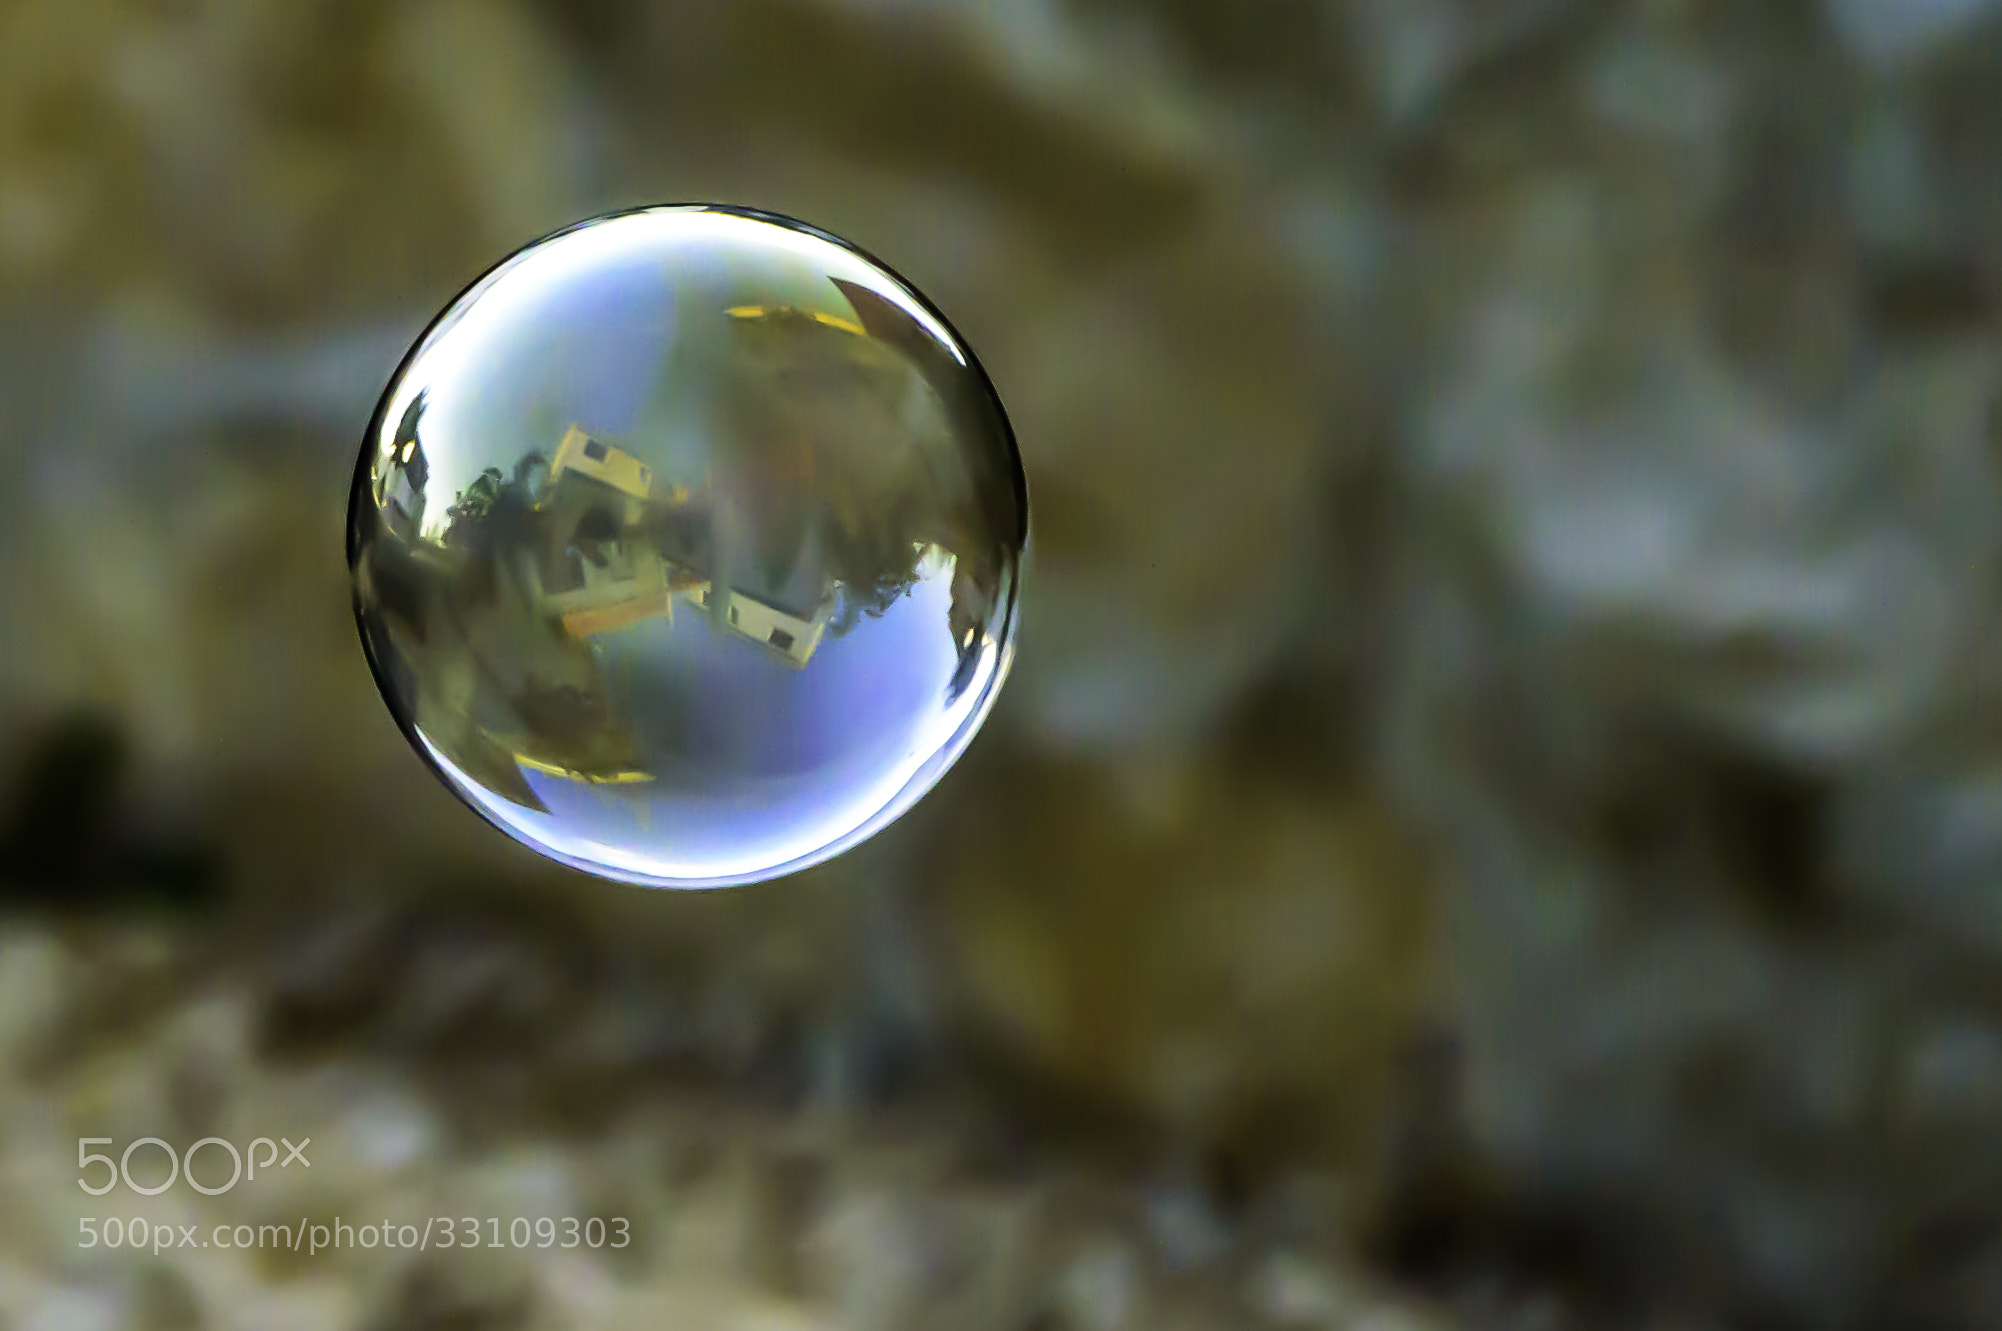 Photograph House reflection in a bubble by Bertie Odendaal on 500px